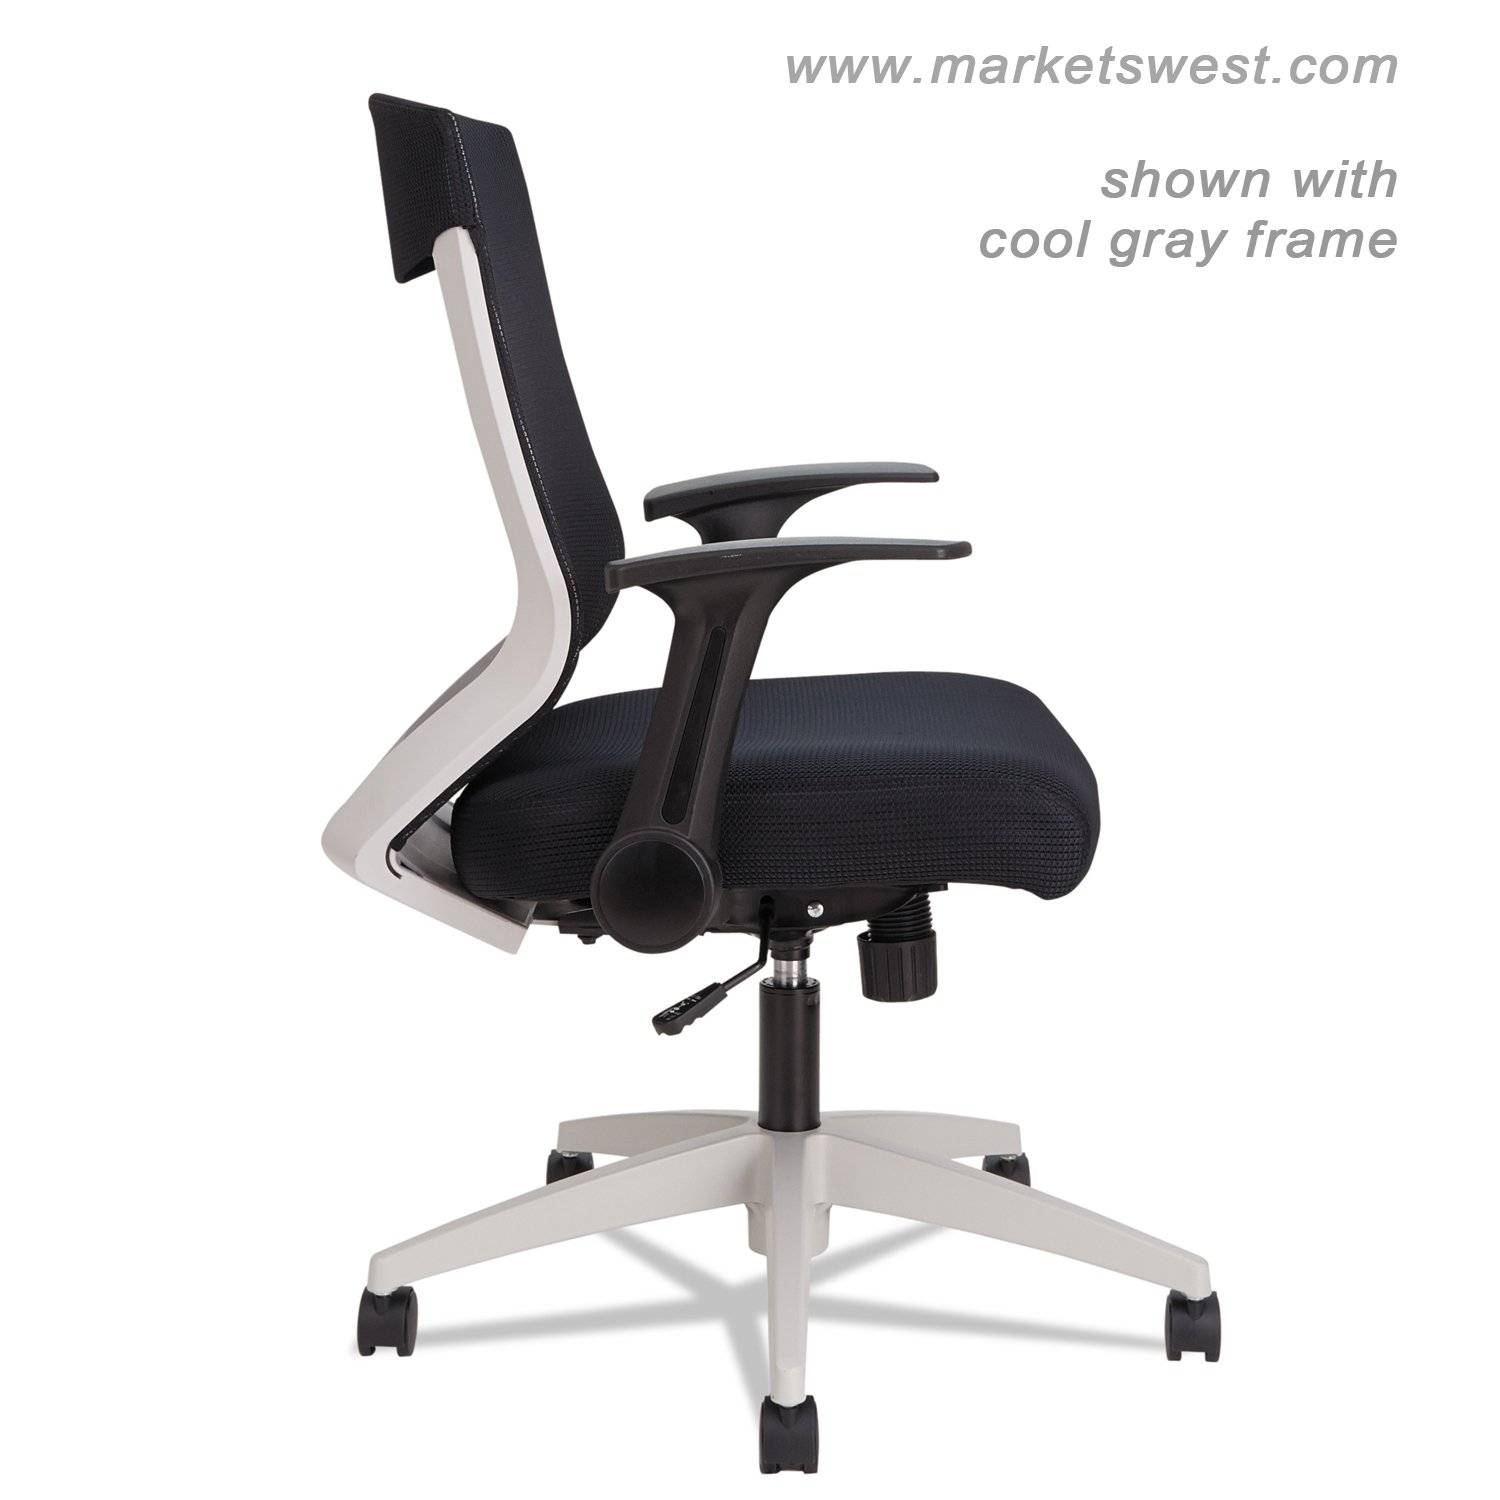 cool gray office furniture. alera ebk series synchro midback fliparm mesh chair blackcool gray frame